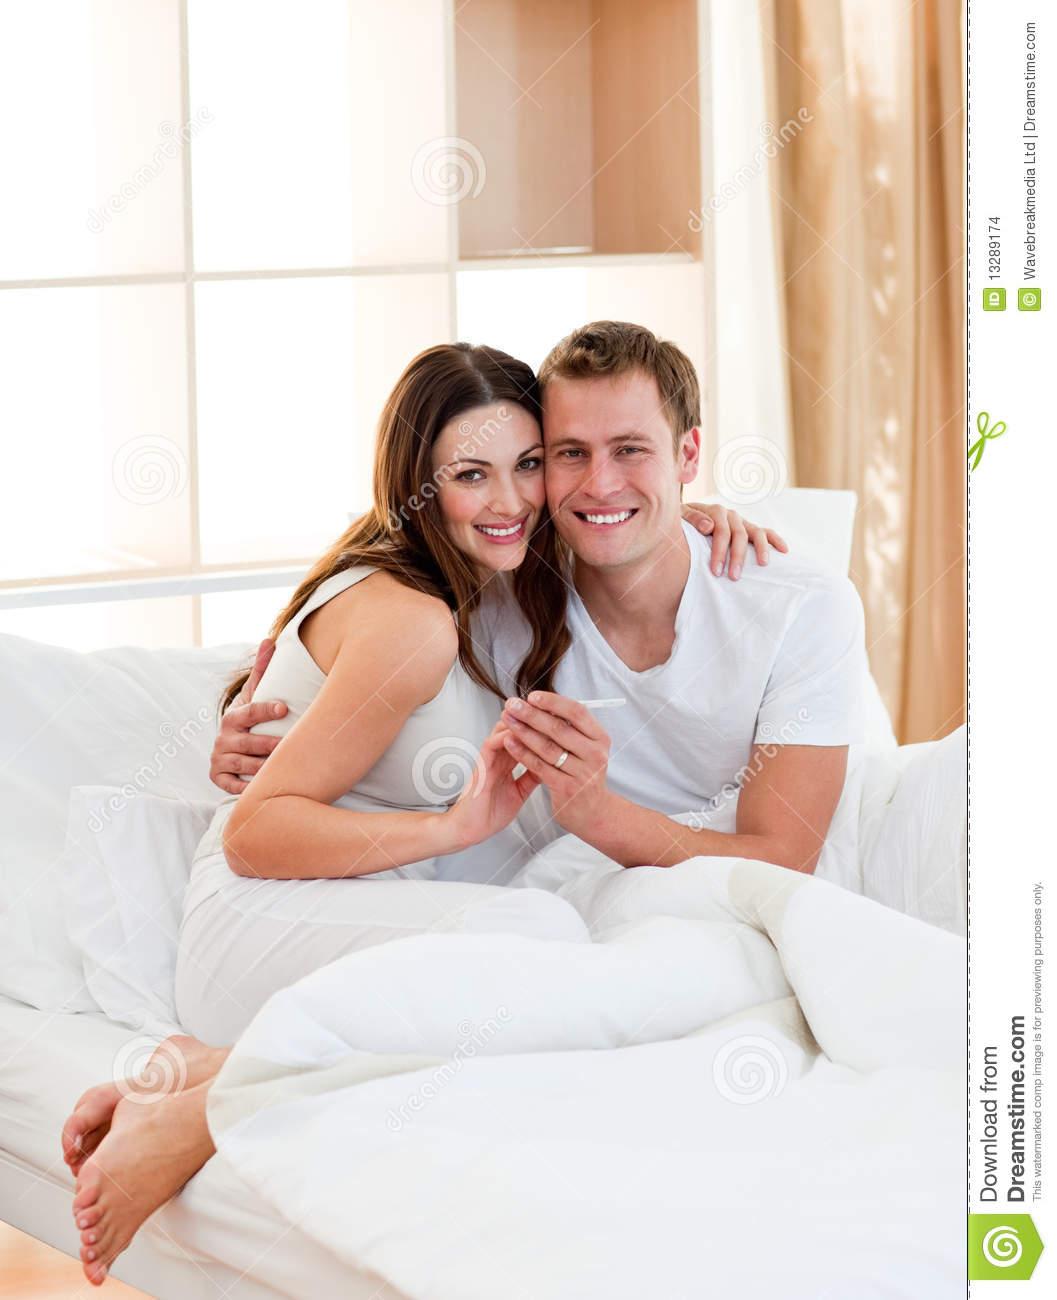 a couple finding out results of a pregnancy test stock photo image 13289174. Black Bedroom Furniture Sets. Home Design Ideas